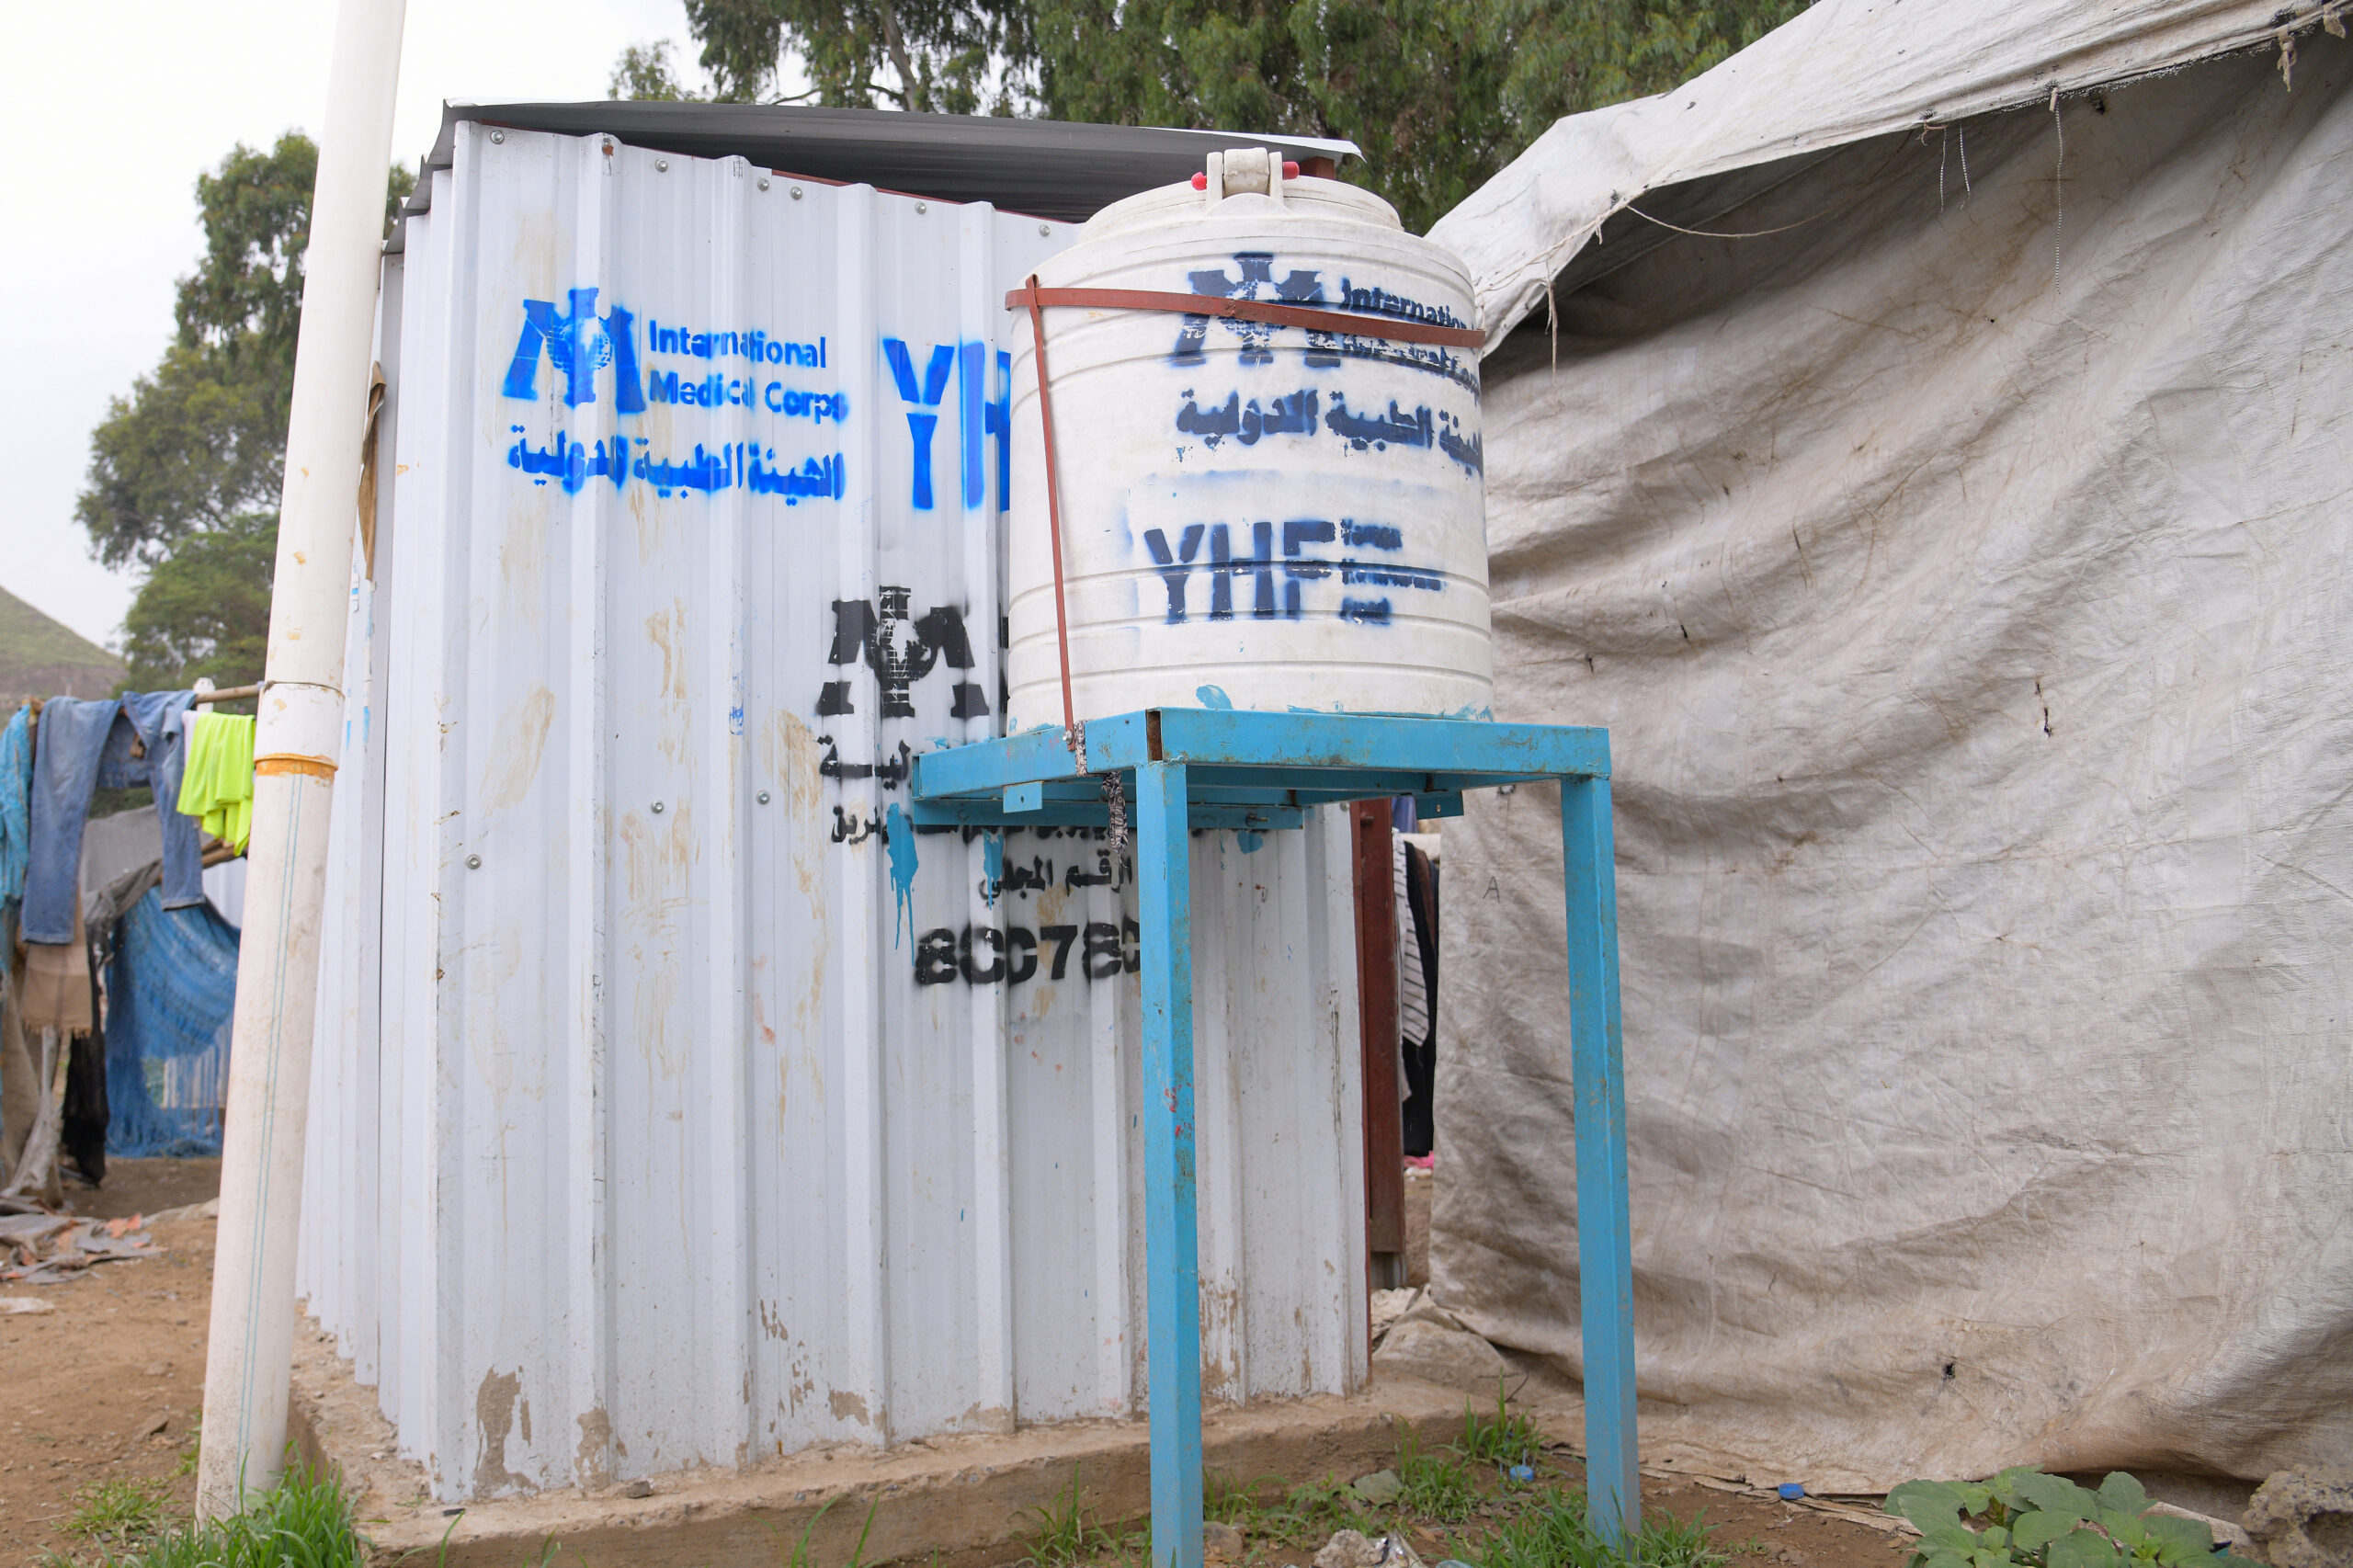 At the Heratha camp for IDPs, we're providing access to clean water by supporting latrine and water-system construction, and distributing hygiene kits.